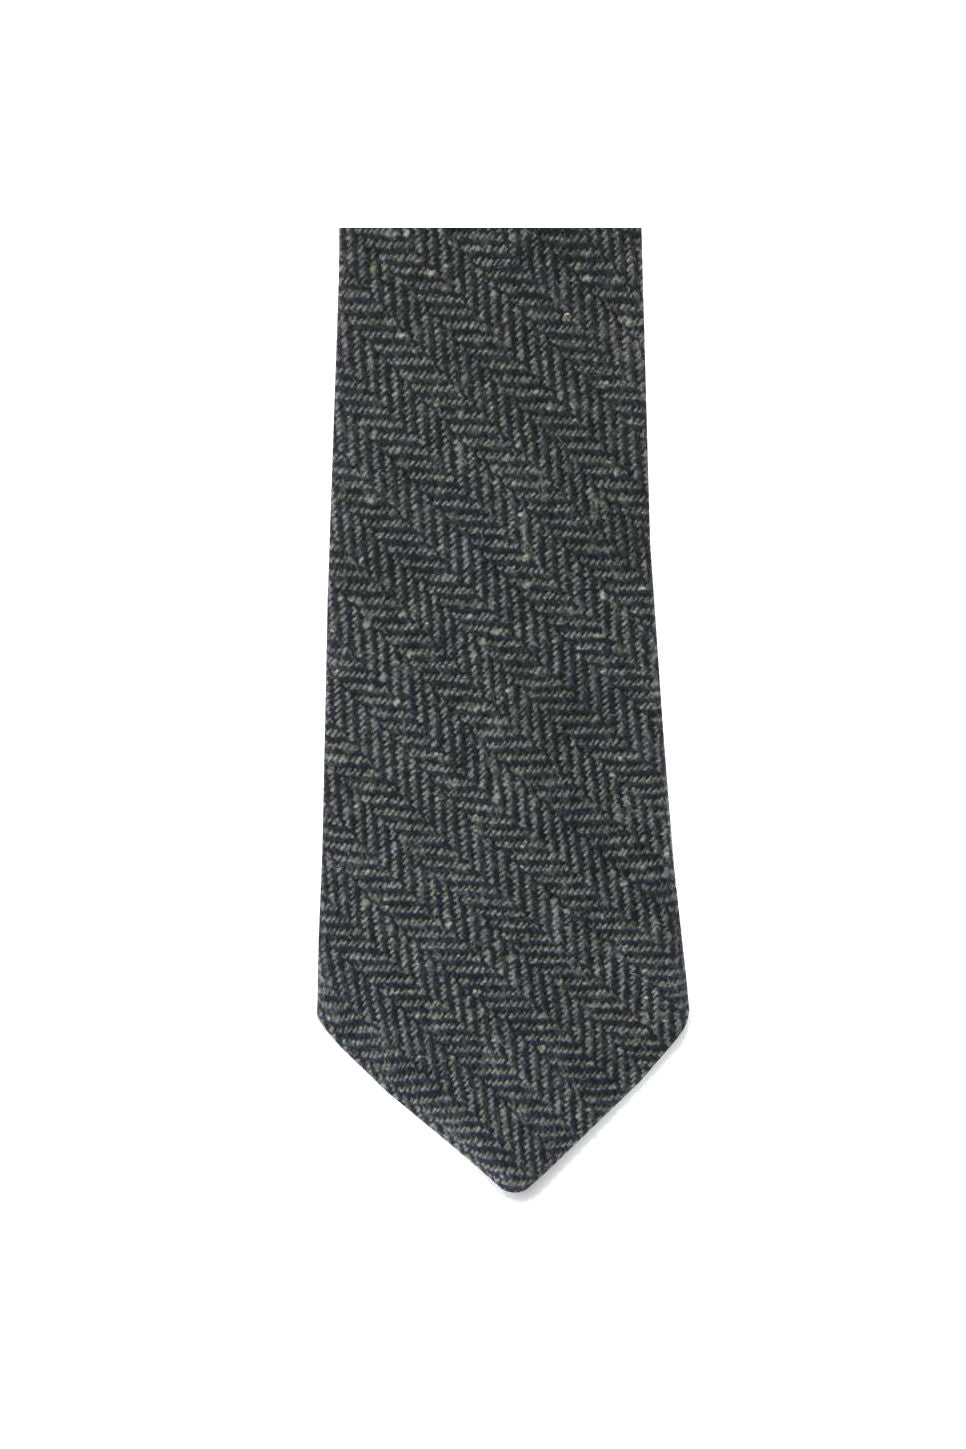 Pocket Square Clothing - The Gasol Tie - Dark Blue